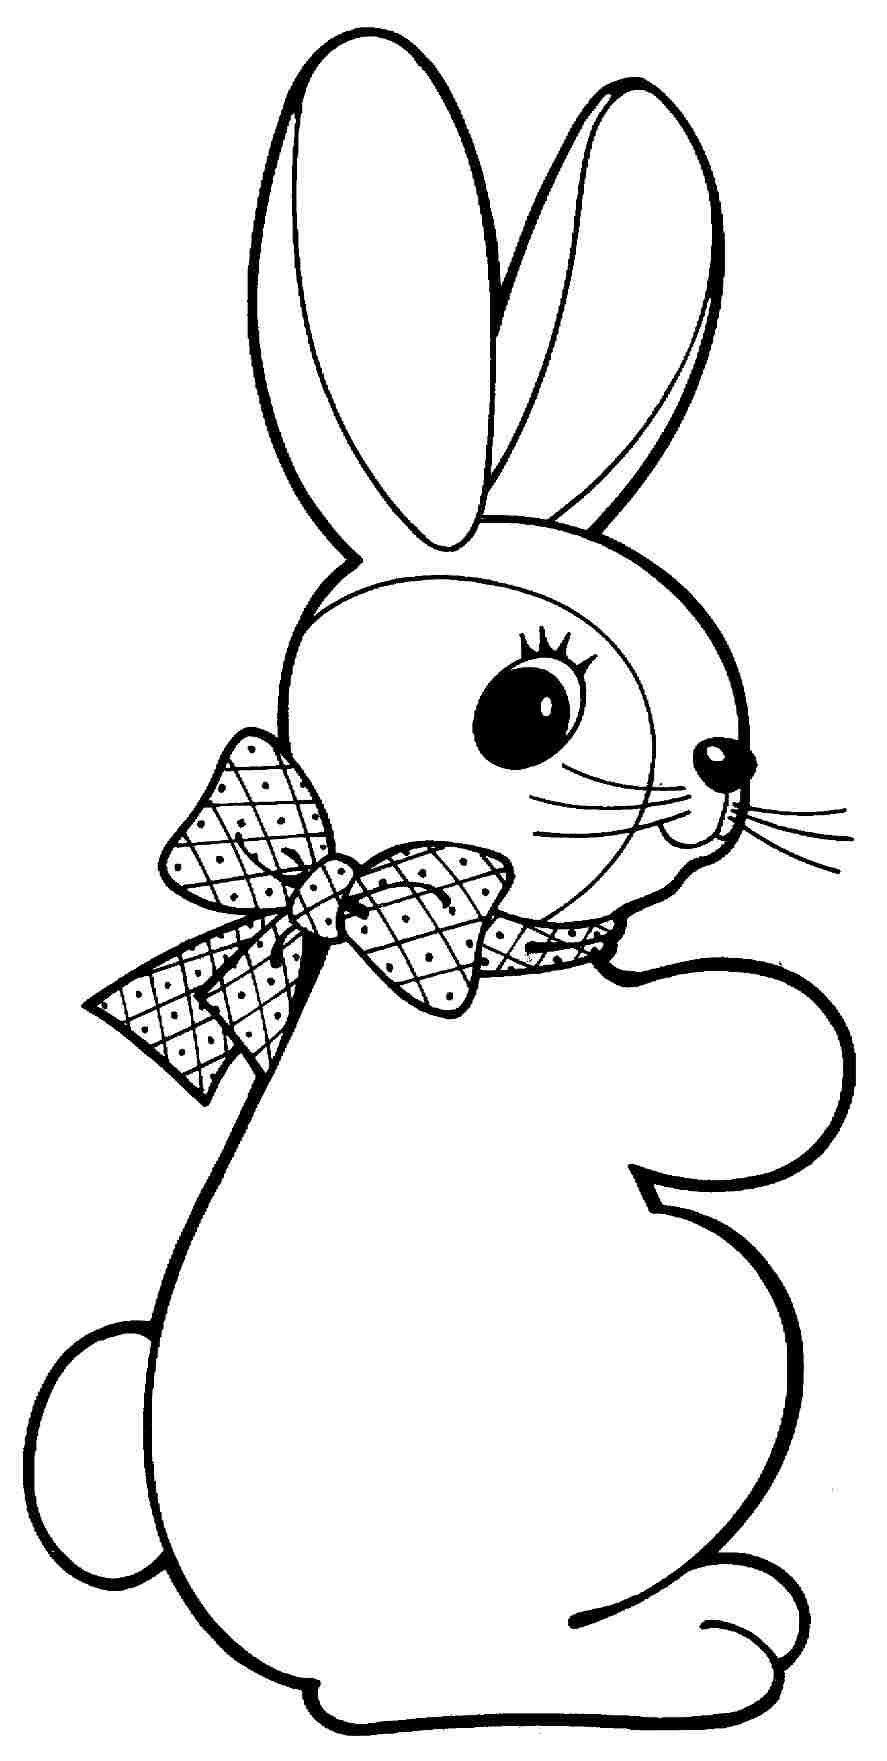 Animal Rabbit Colouring Pages Free Printable For Preschool